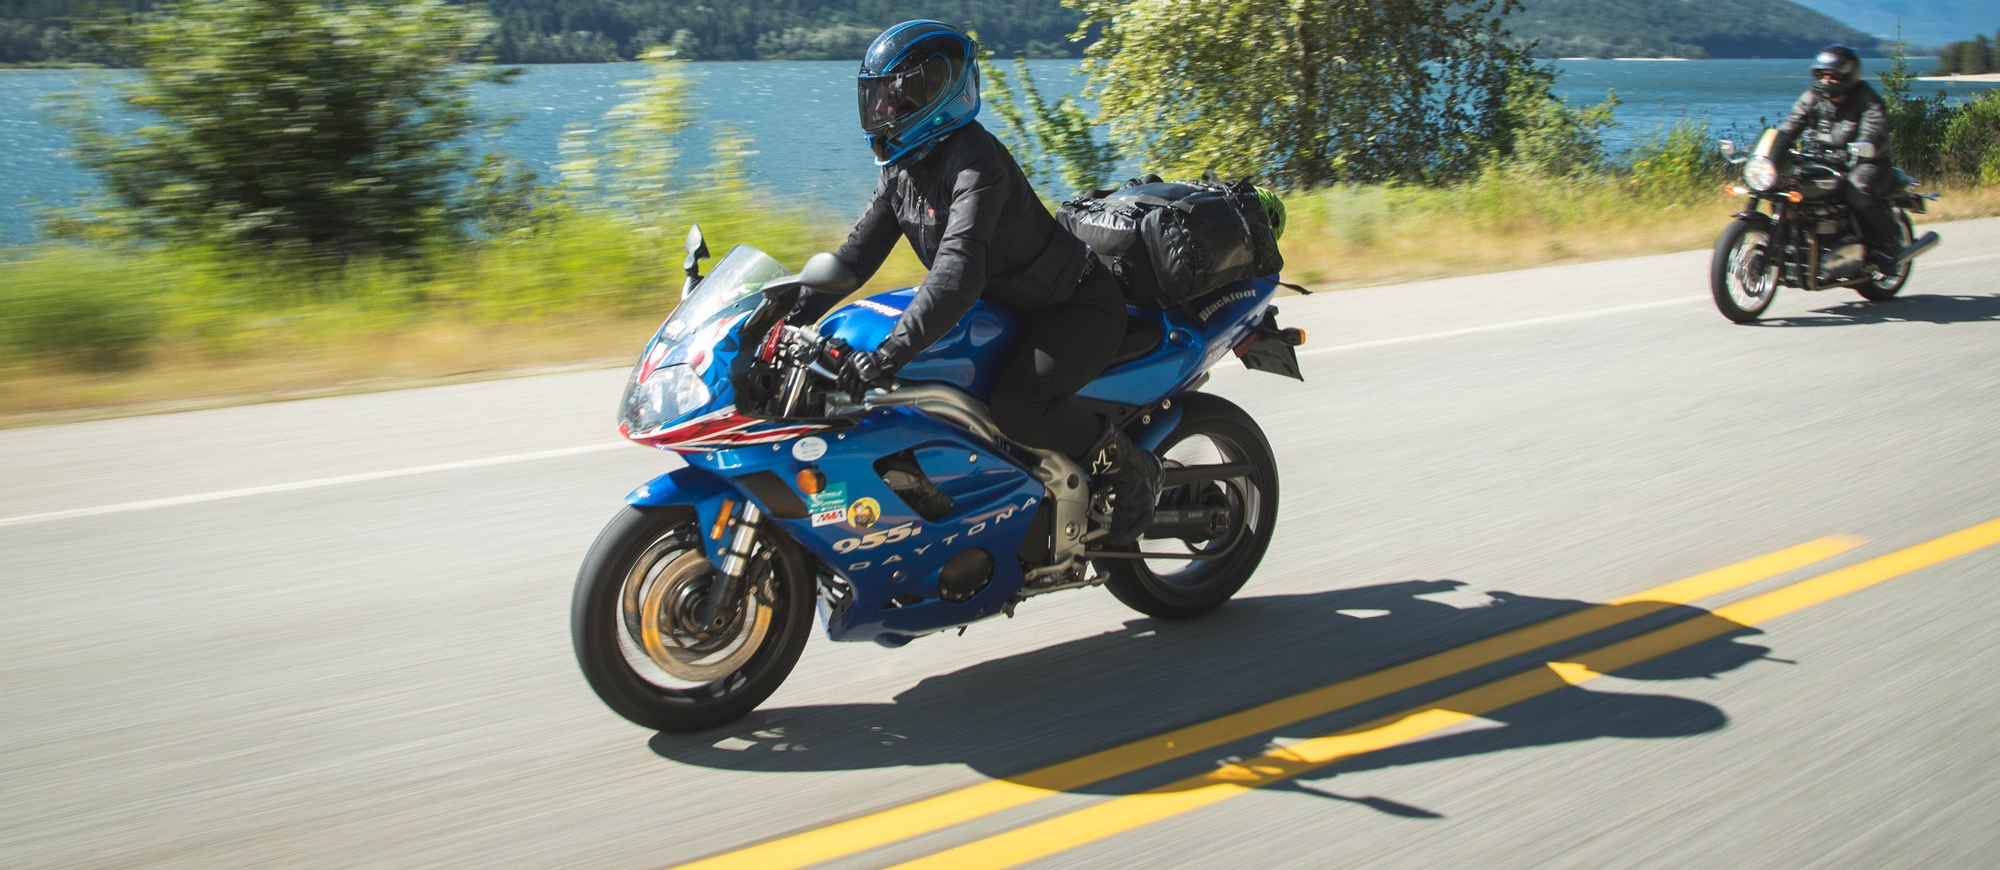 A motorcycle driving on the highway along the shores of Kootenay Lake.